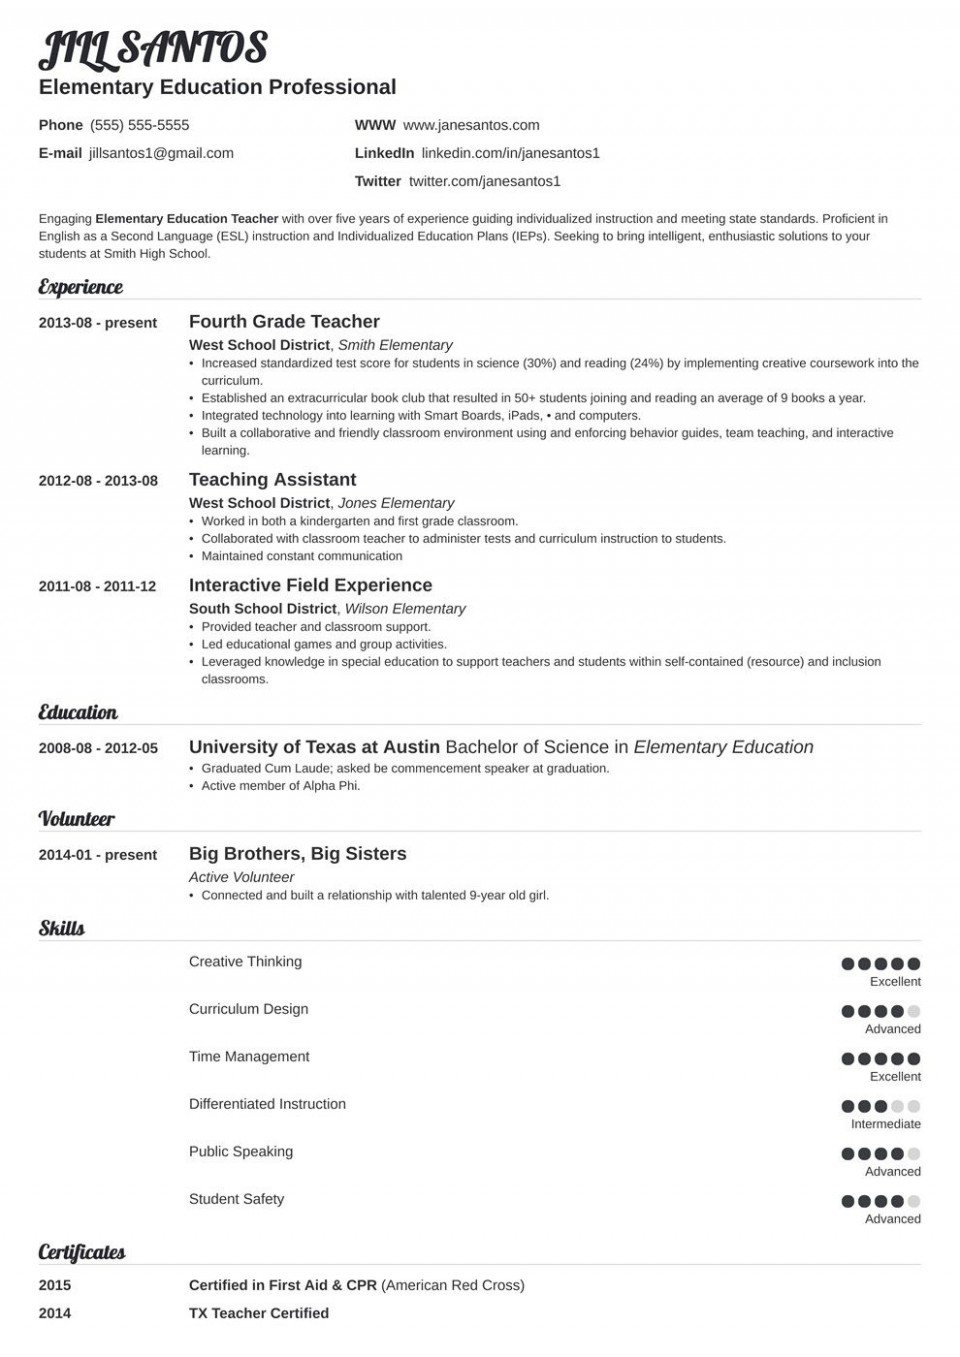 006 Stupendou Resume Template For Teacher Highest Quality  Free Download Australia Microsoft Word 2007960